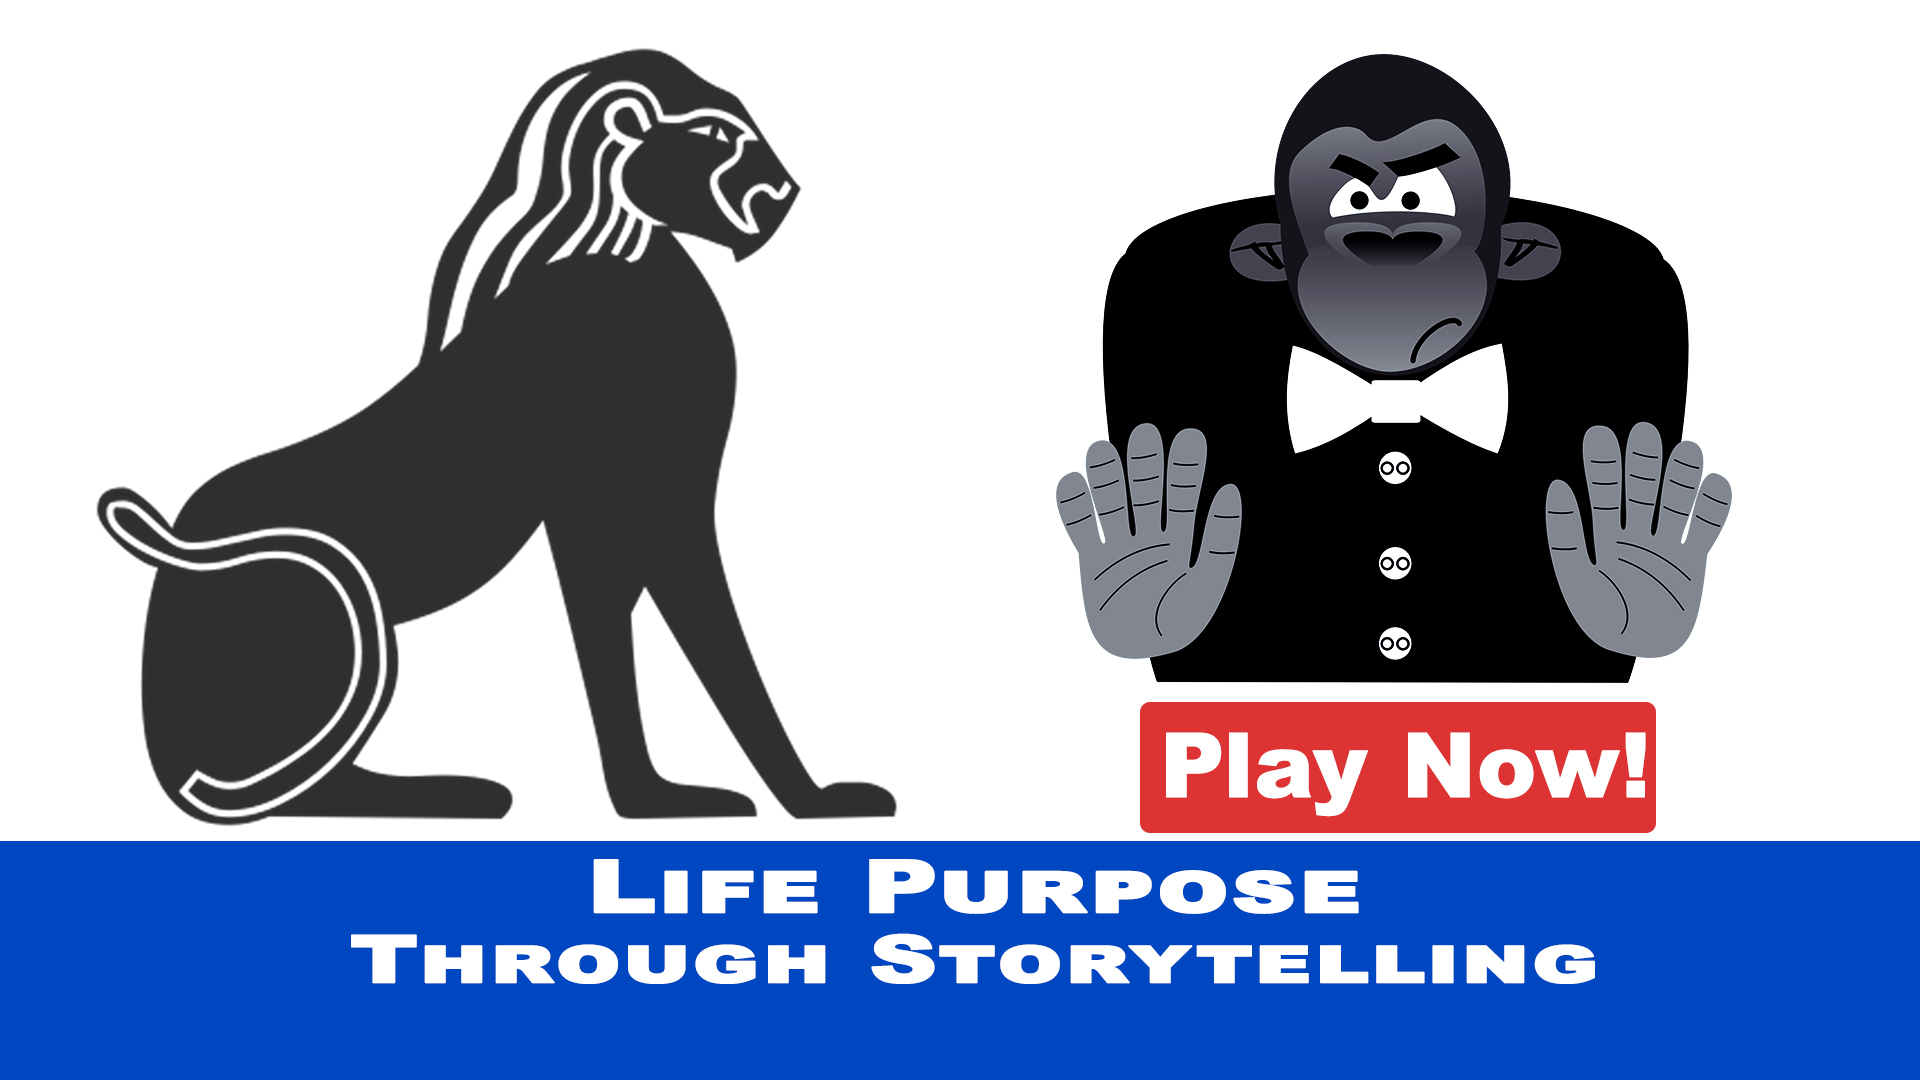 Life Purpose Through Storytelling